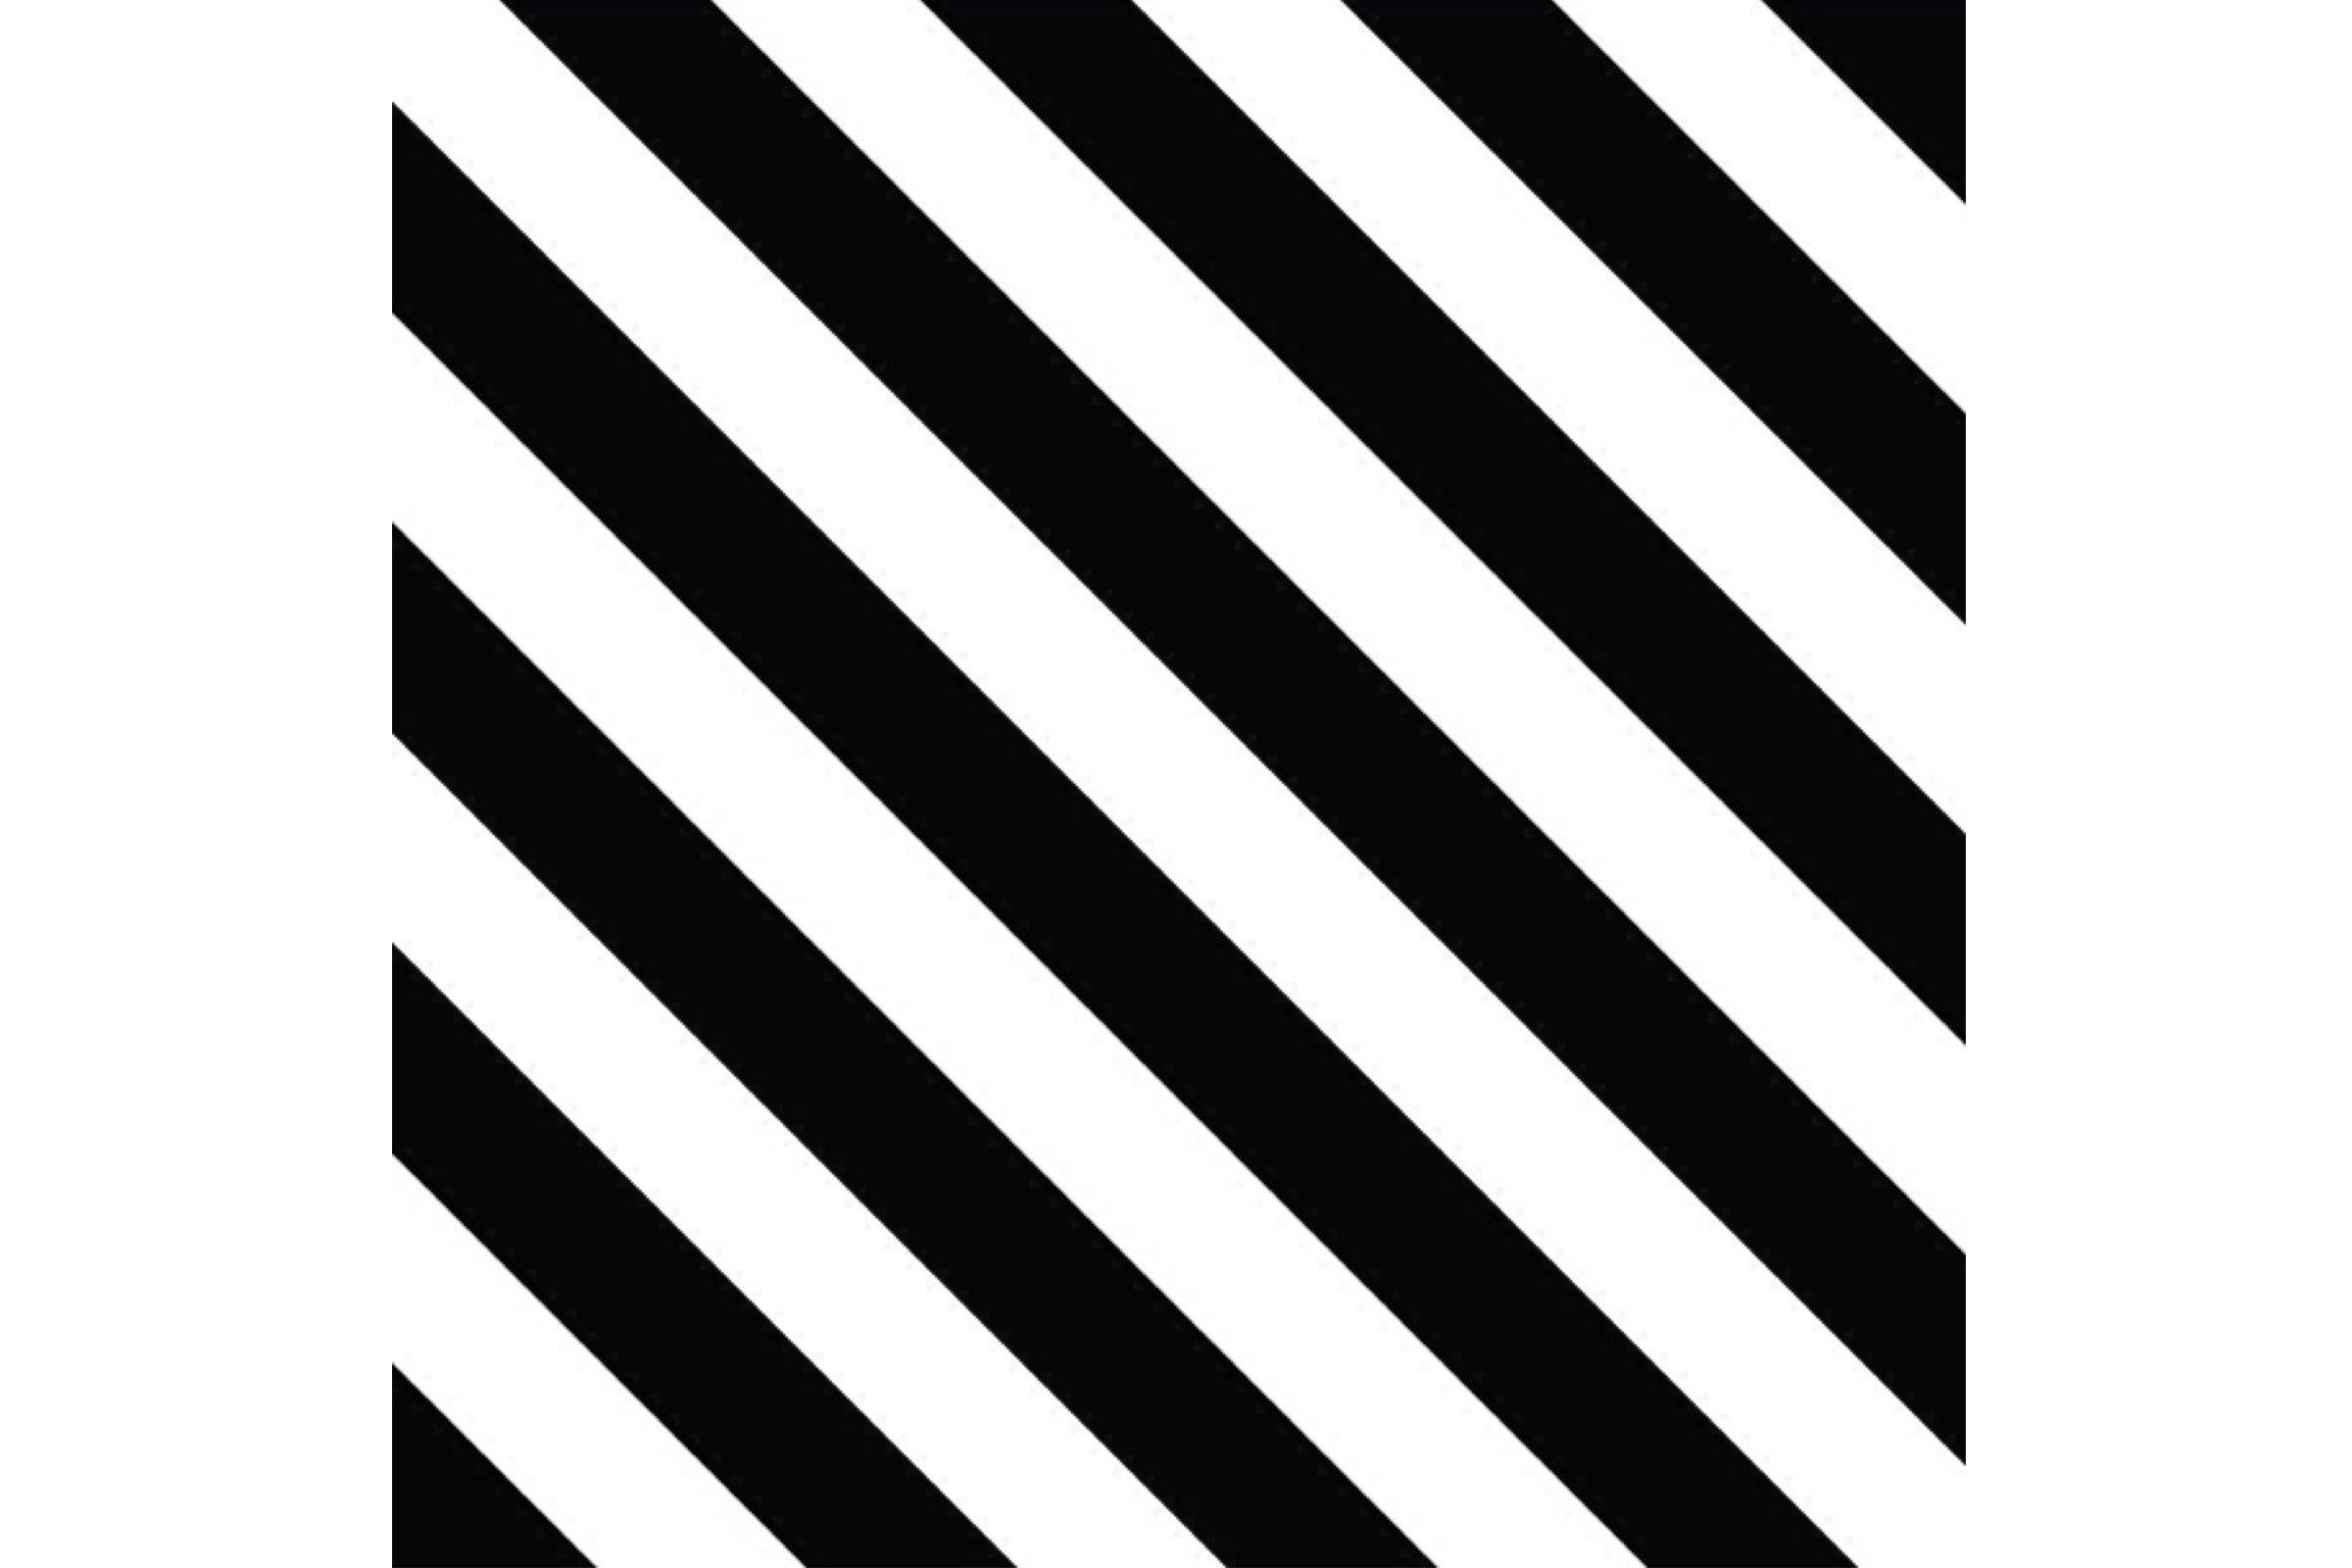 The Story Behind Those Diagonal Lines